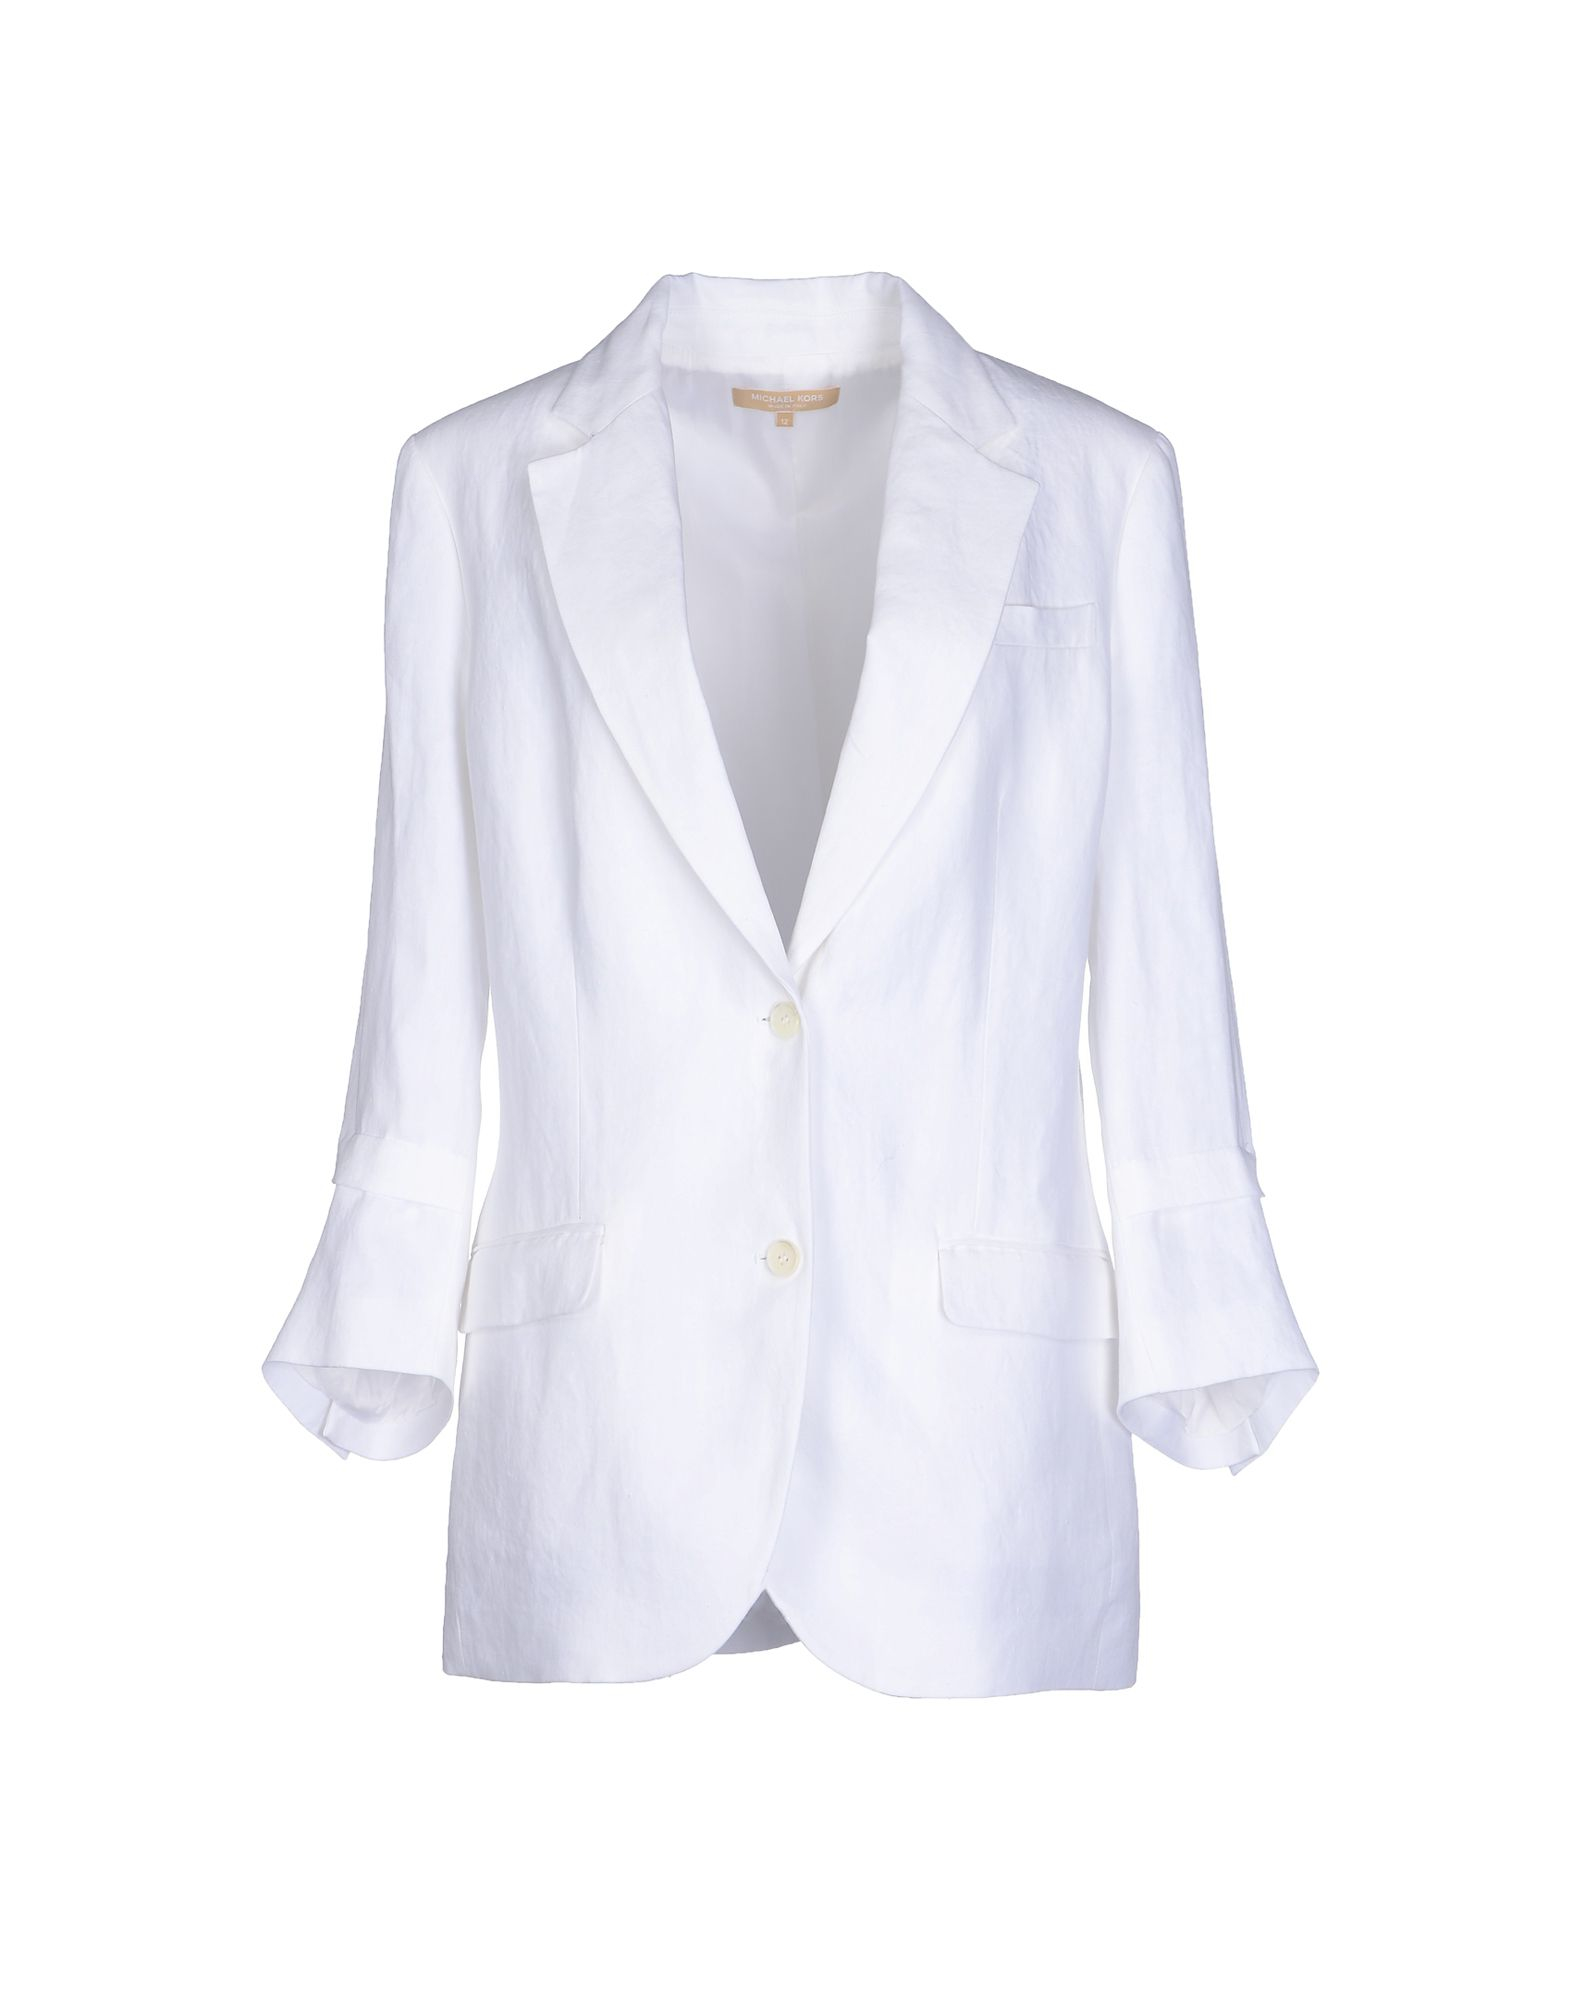 michael kors blazer in white lyst. Black Bedroom Furniture Sets. Home Design Ideas